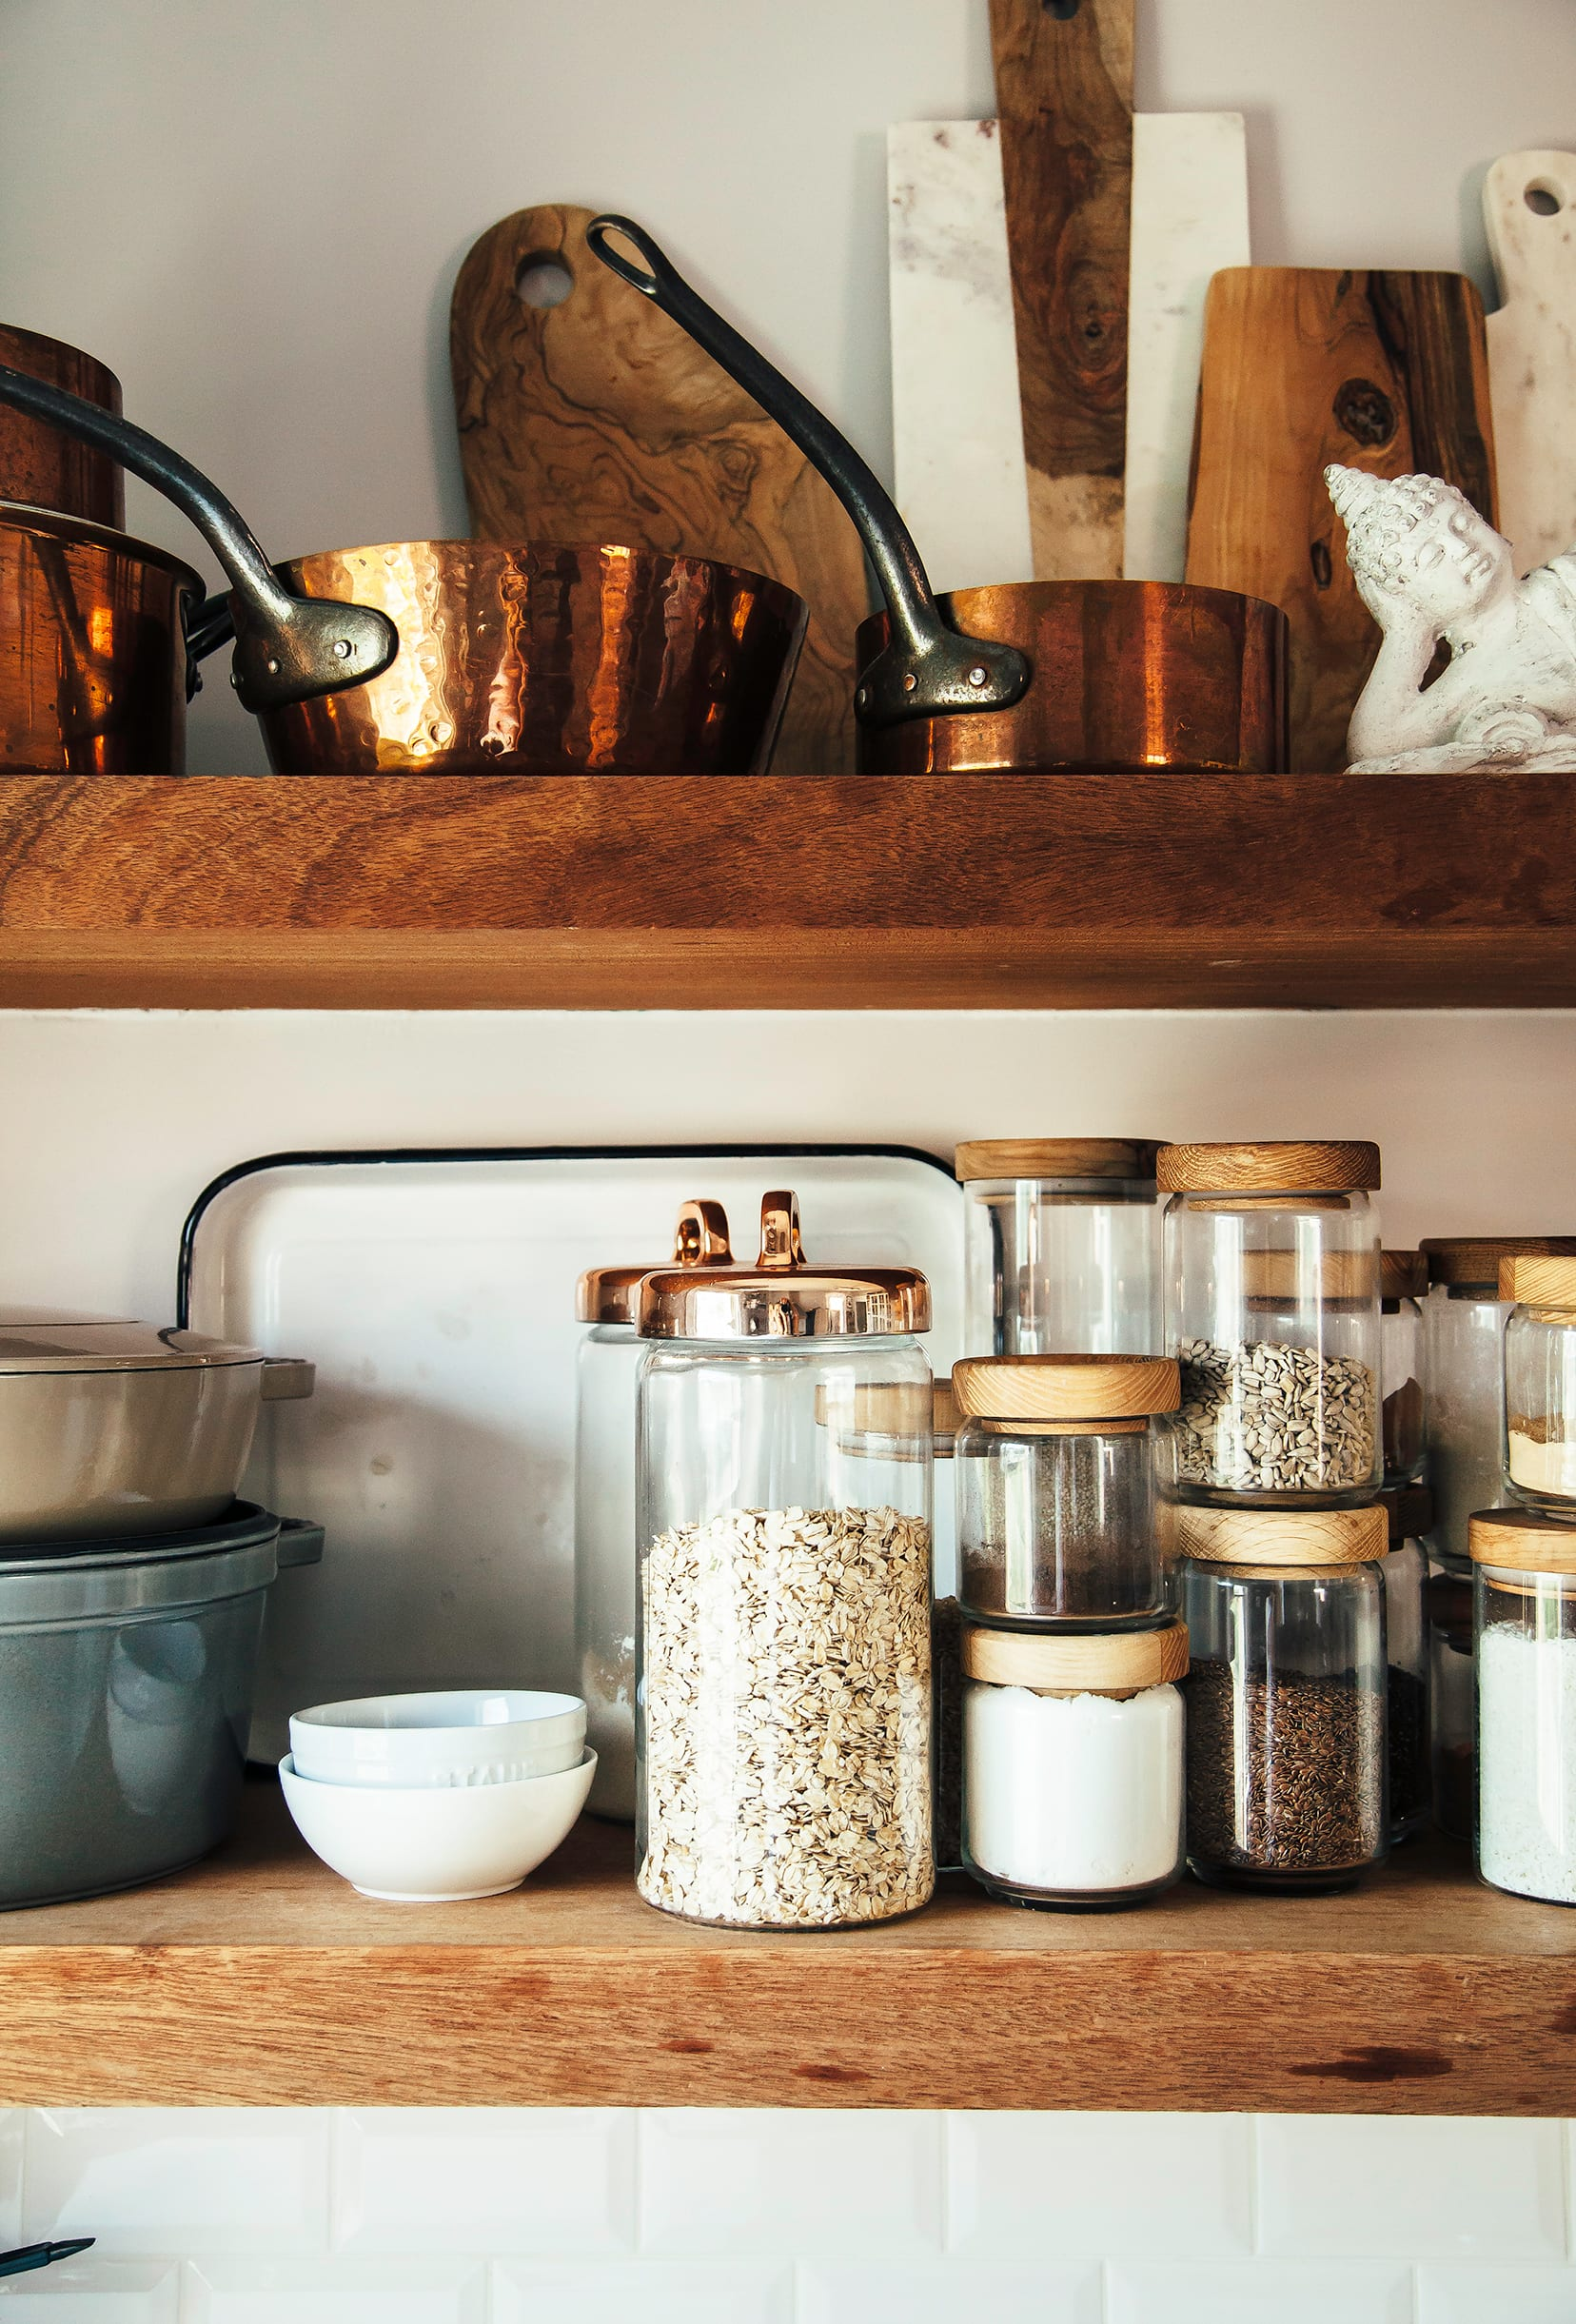 Image shows open kitchen shelves with jars of grains, seeds and spices, as well as copper pots.